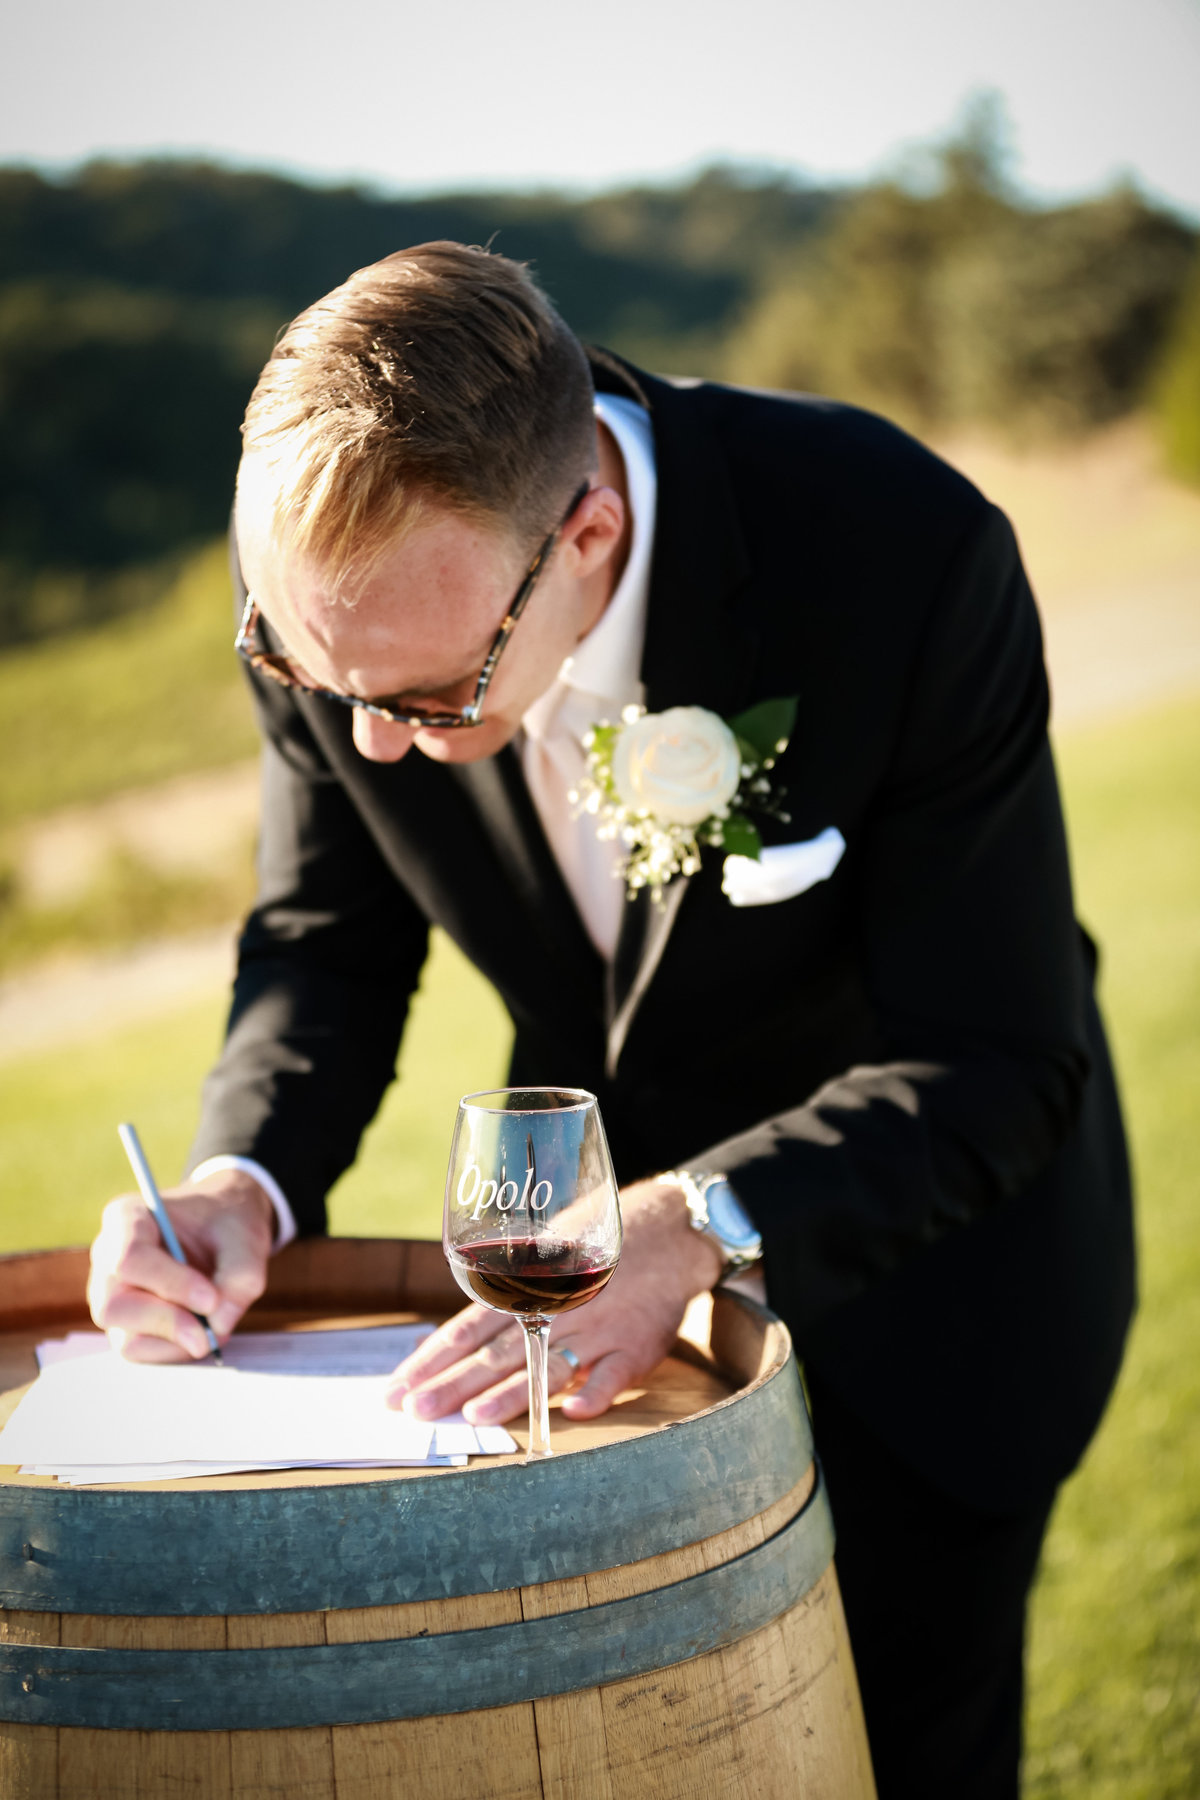 opolo_vineyards_wedding_by_pepper_of_cassia_karin_photography-129